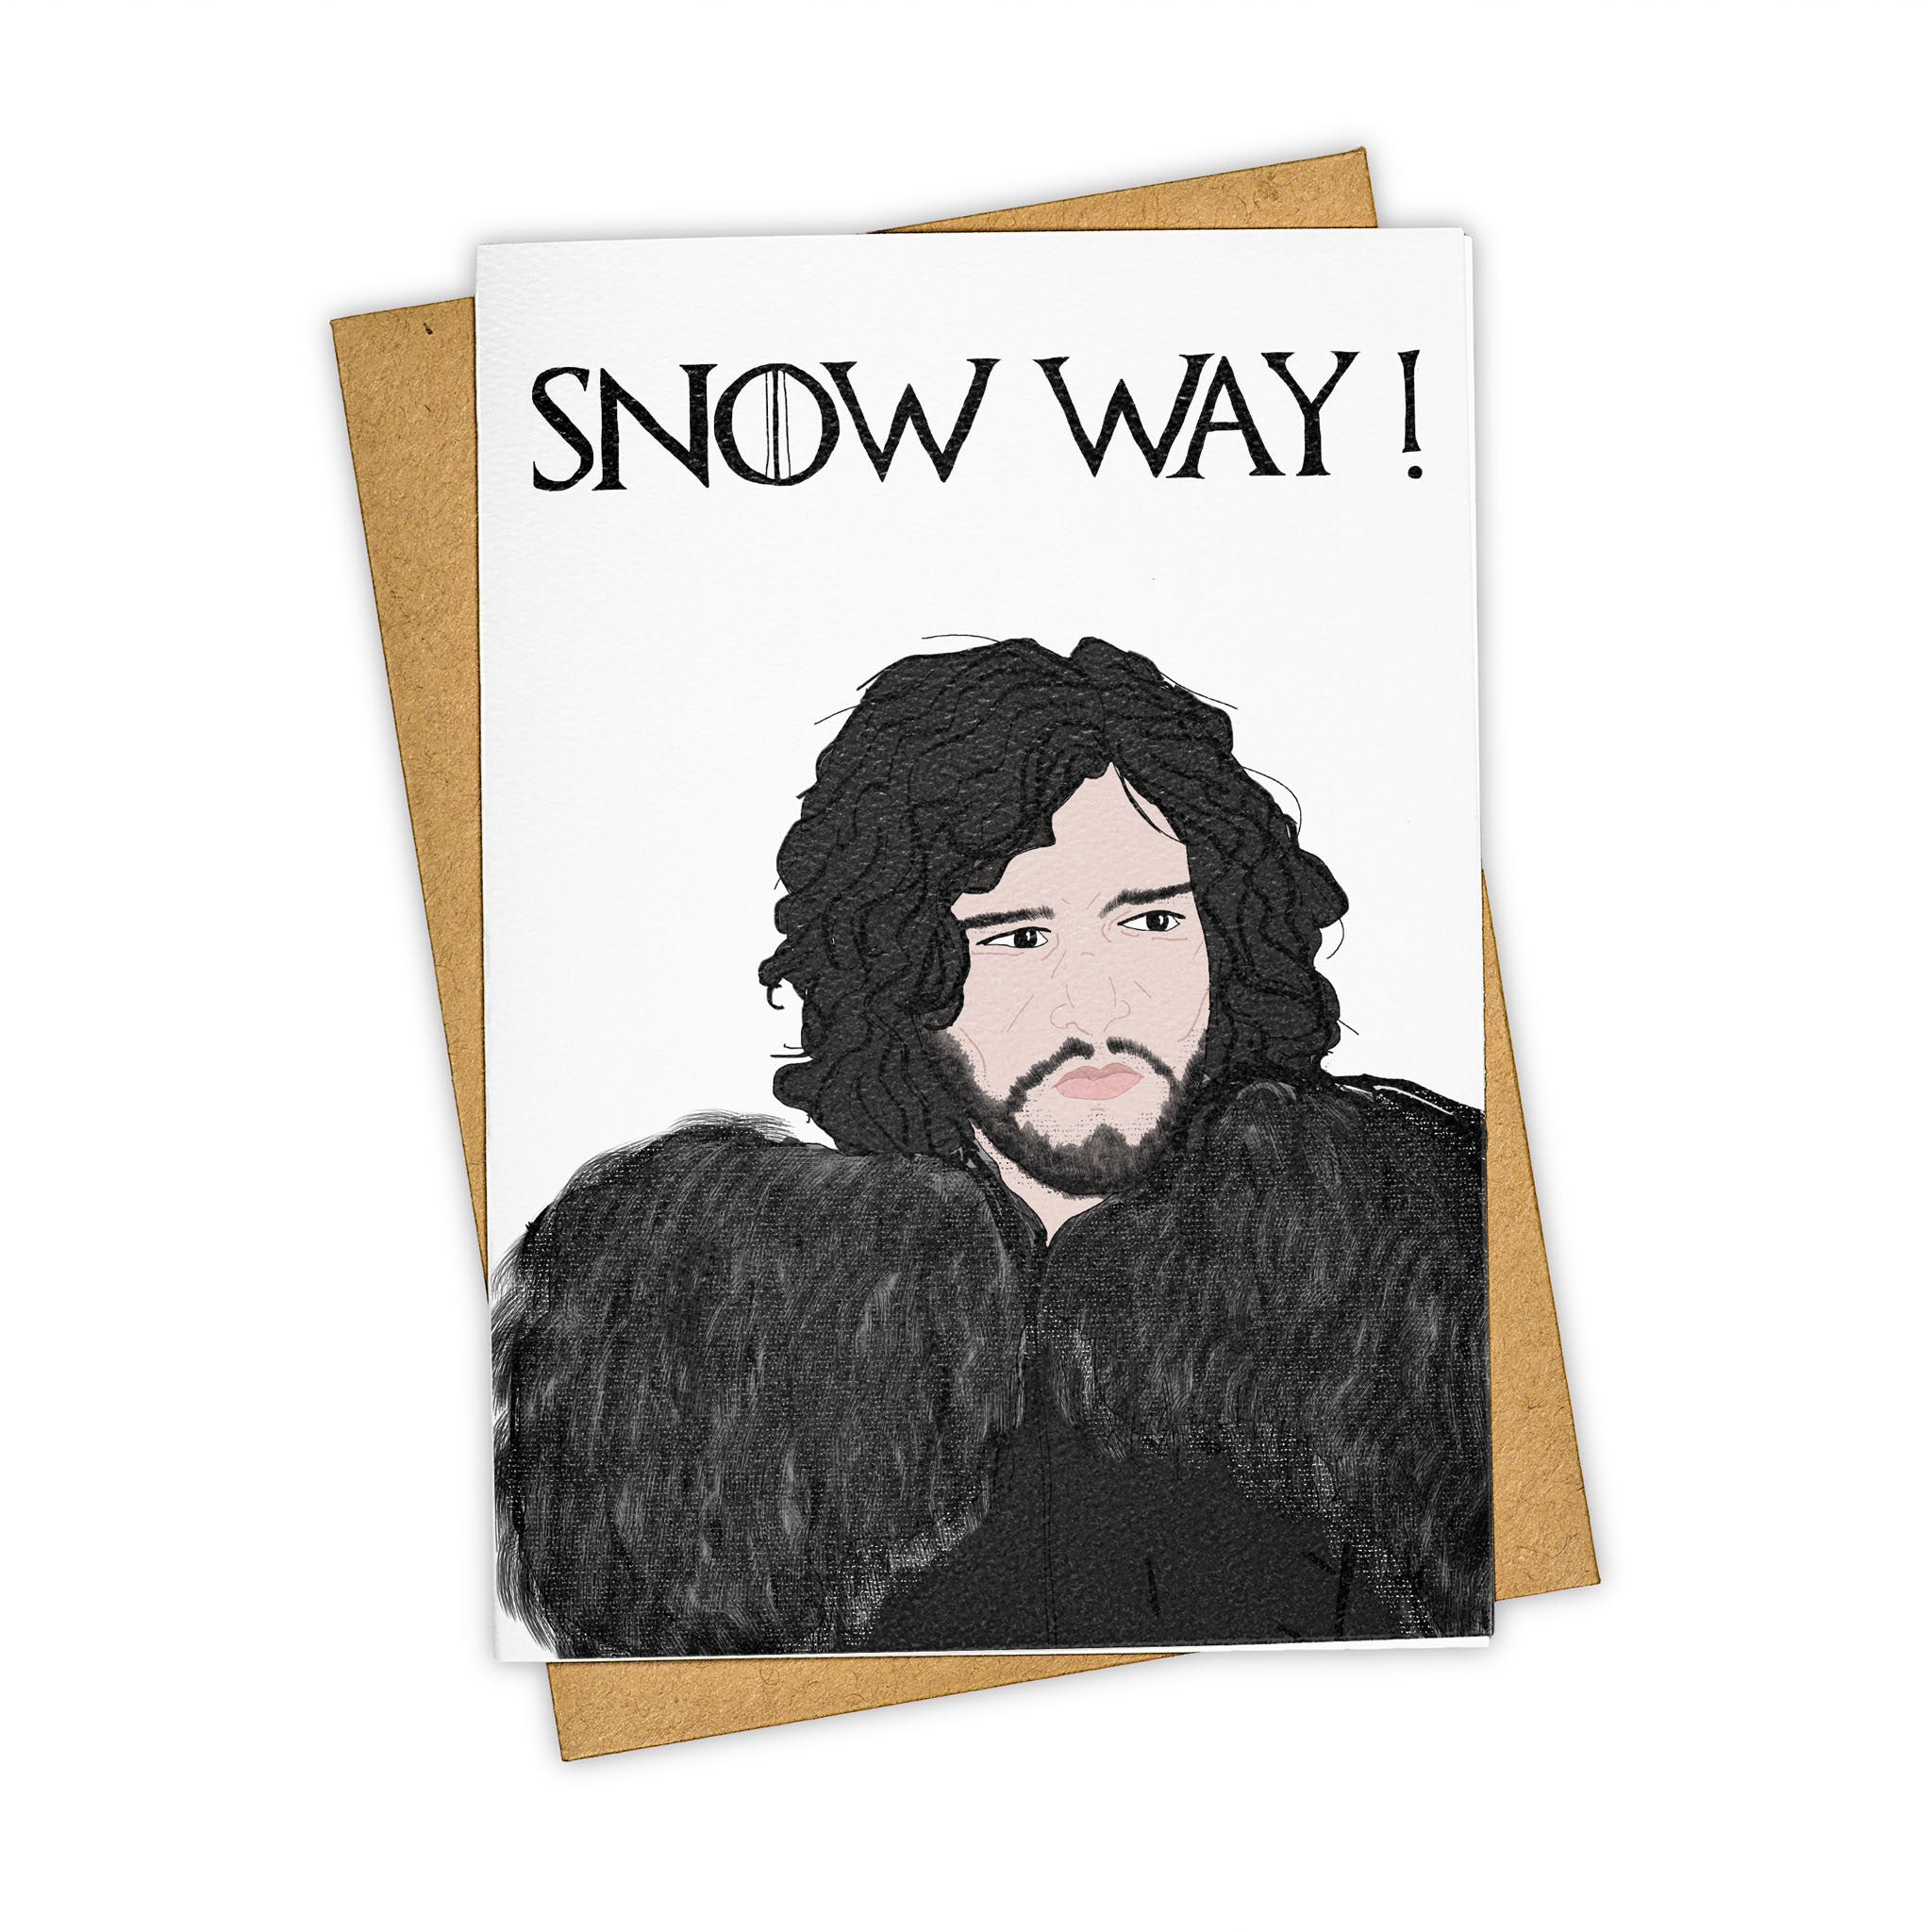 TAY HAM Game of Thrones Jon Snow Way Greeting Card